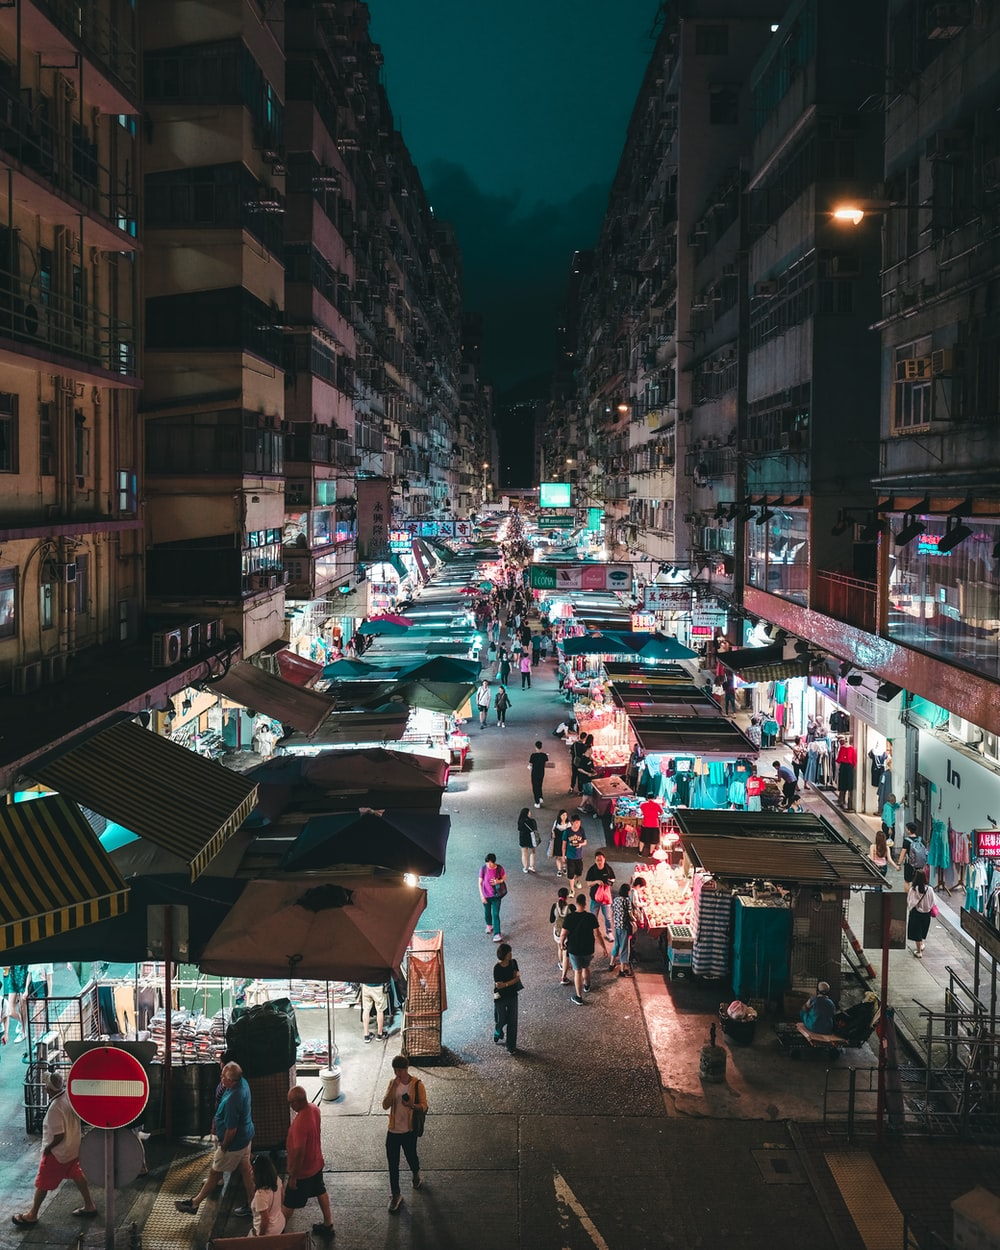 people walking on road near buildings at night time